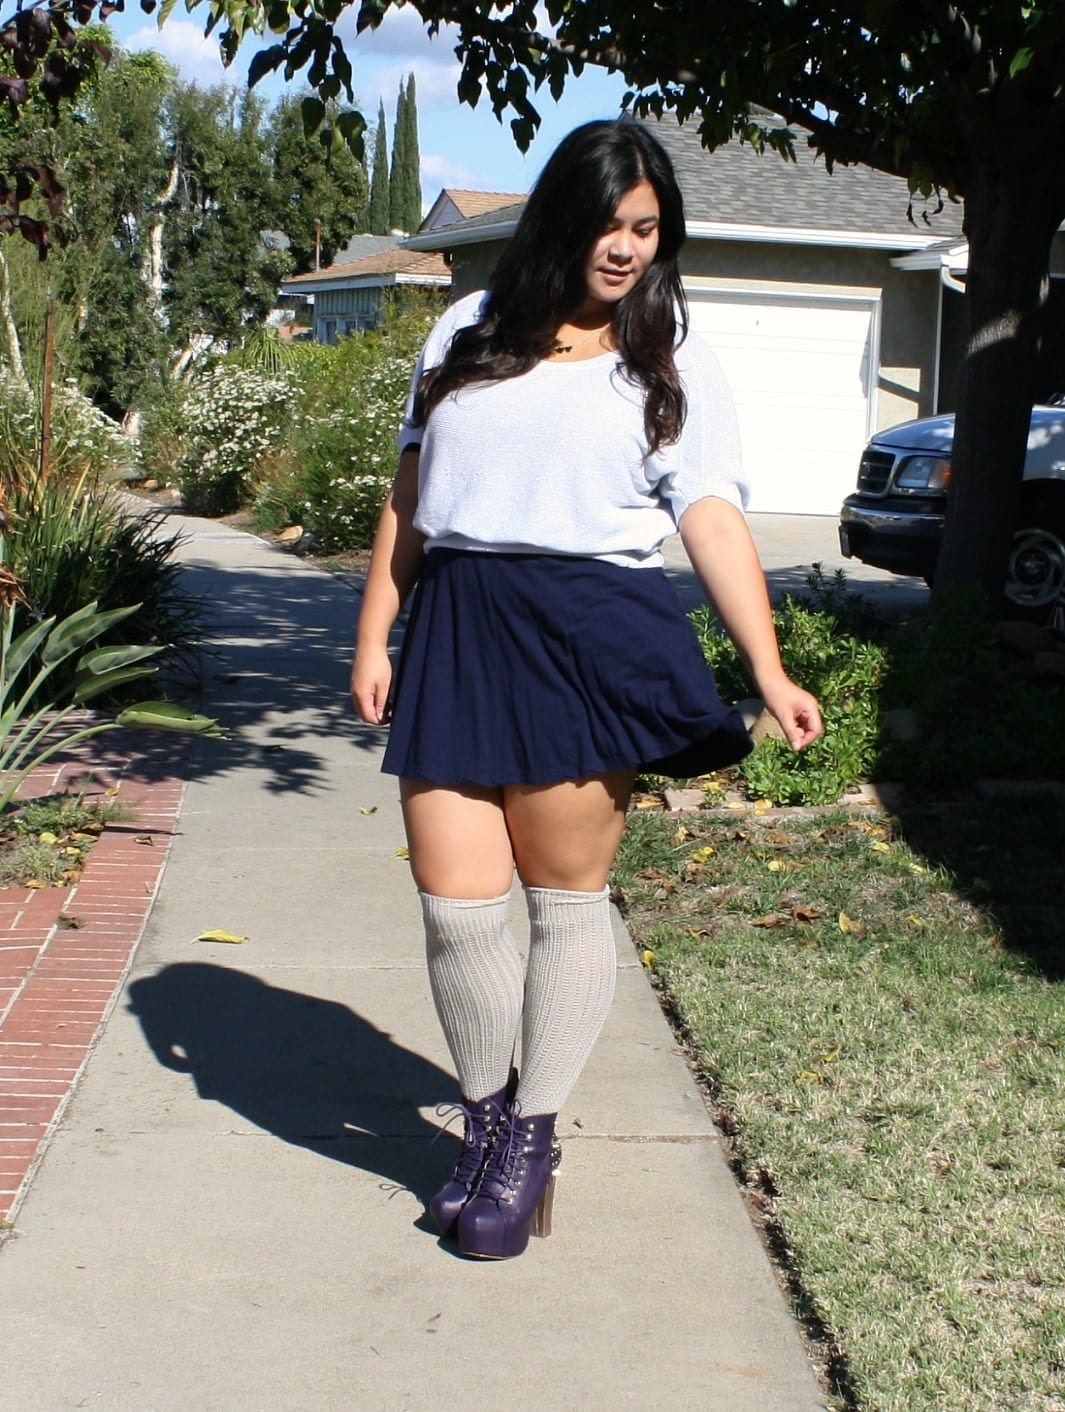 KHS200 Knee High Socks Outfits-23 Cute Ways to wear Knee High Socks